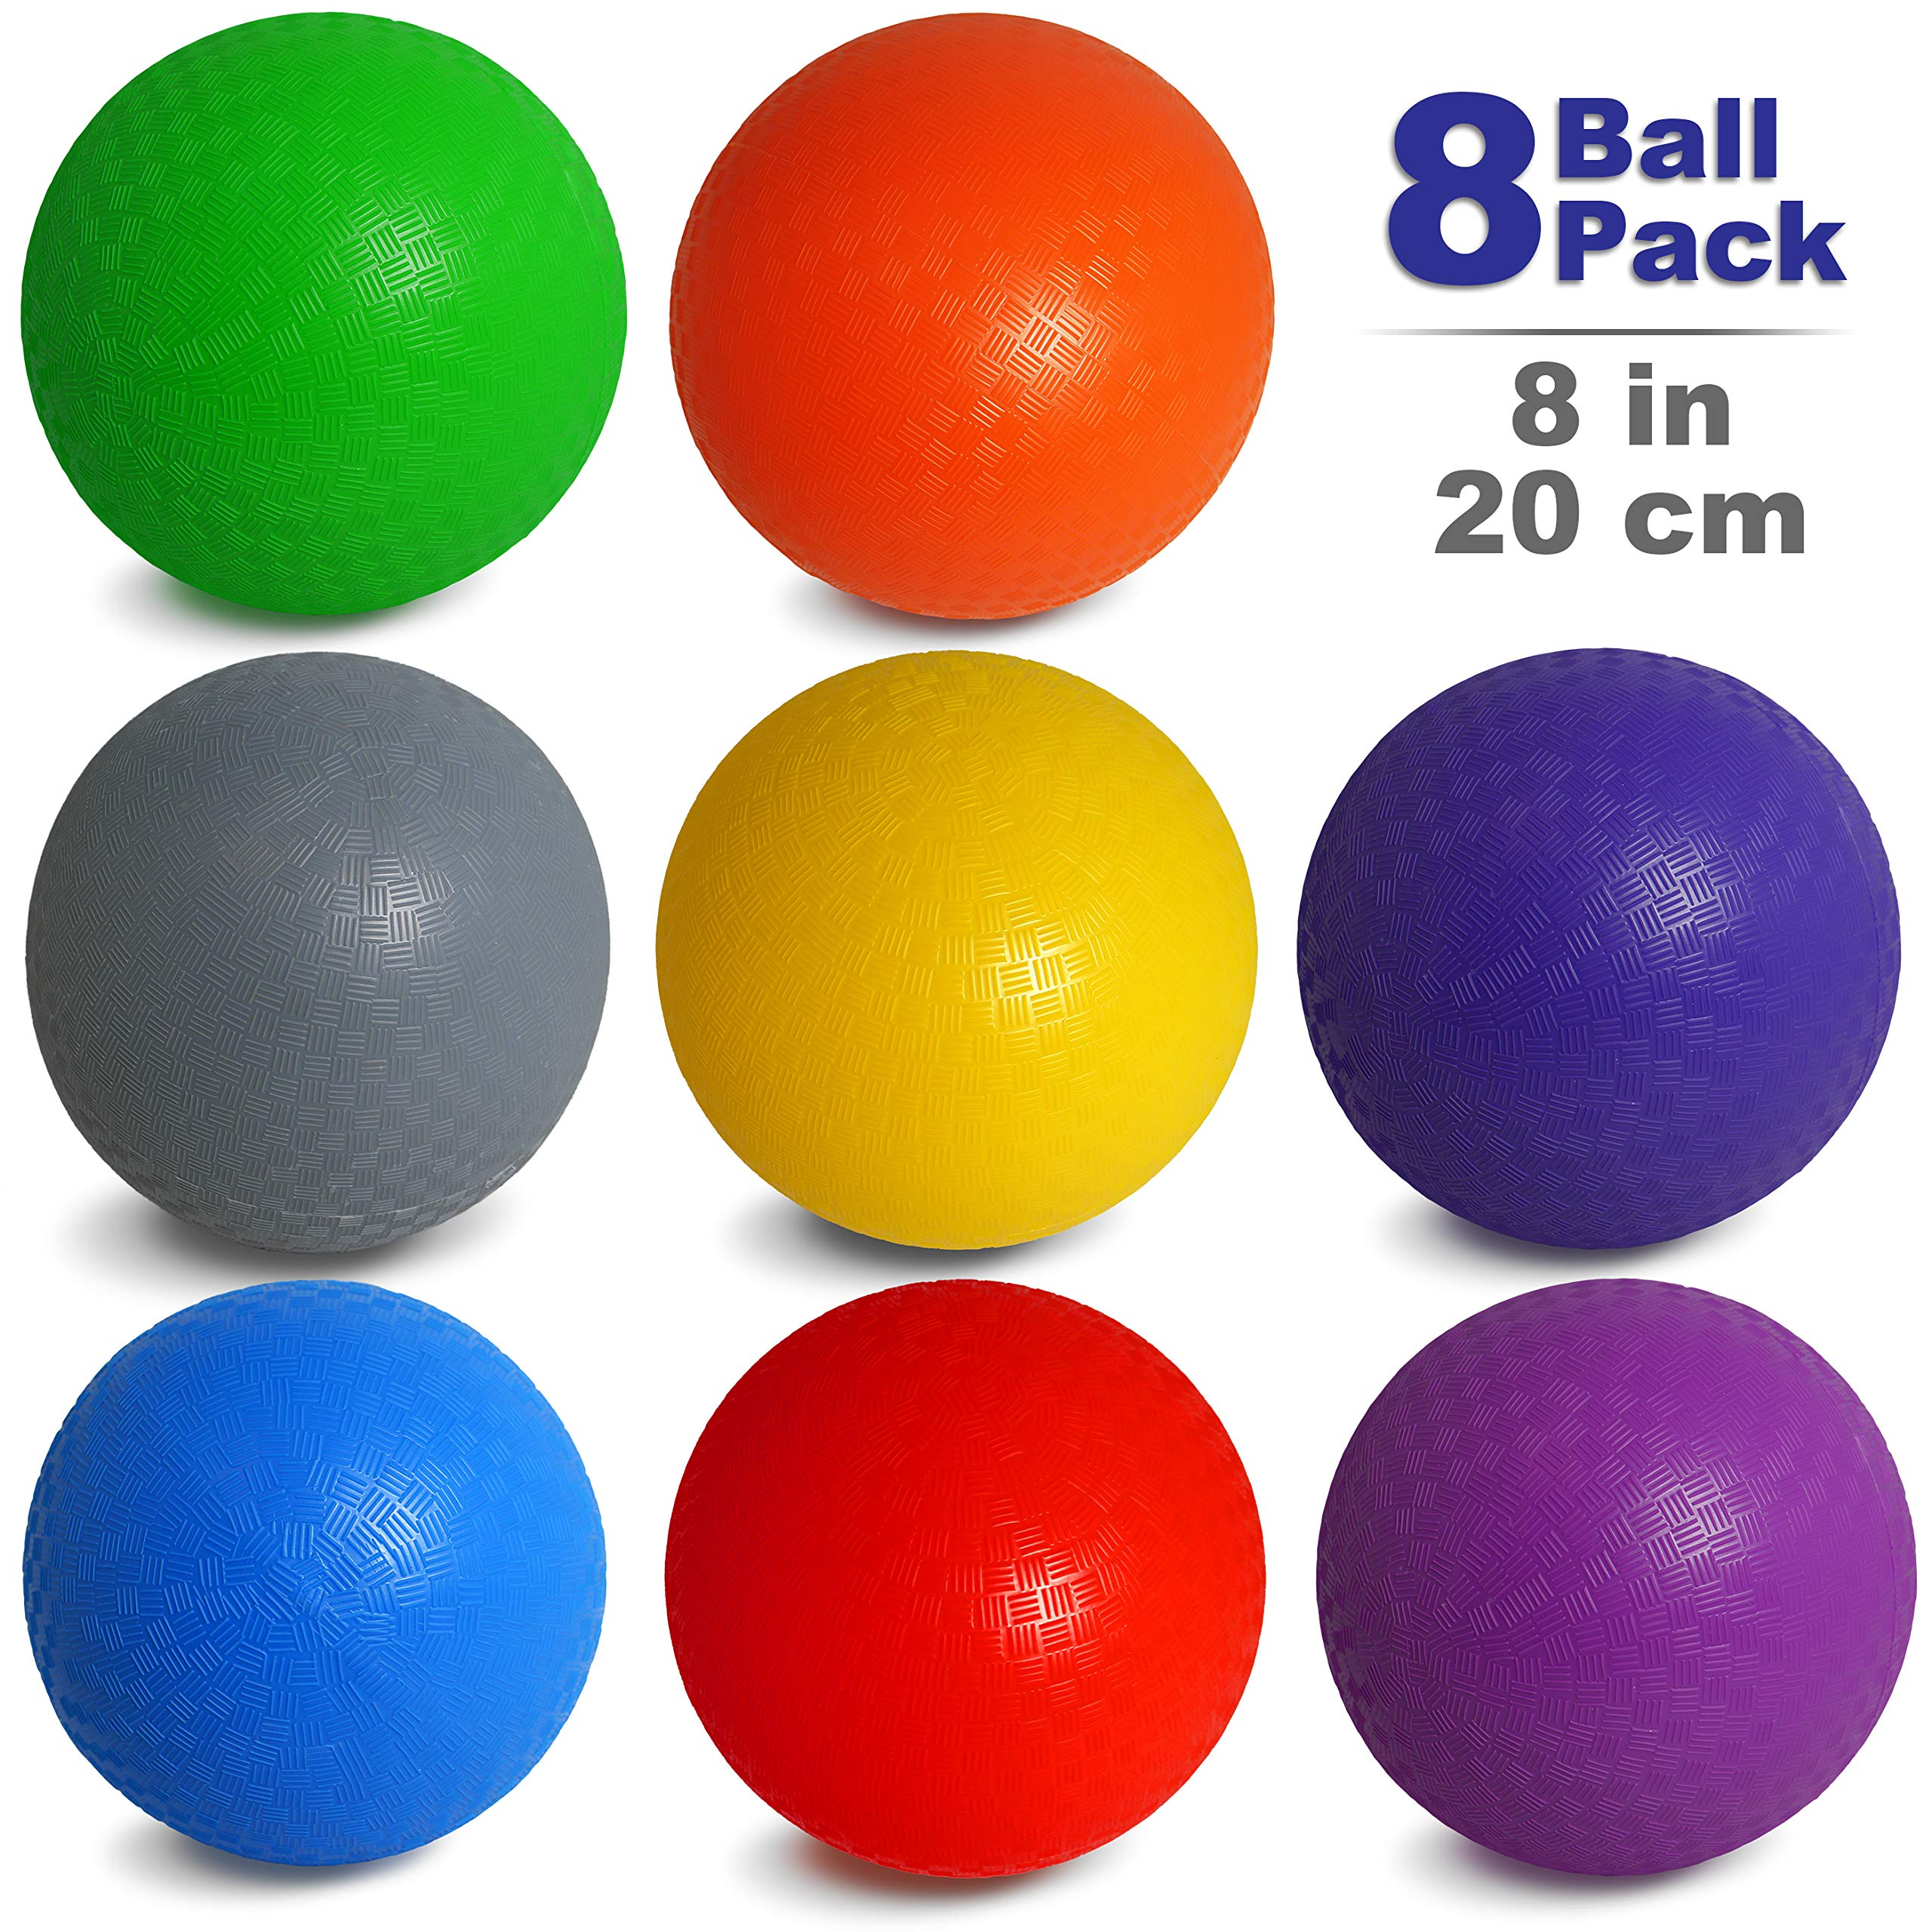 NDN LINE 8 Inch Playground Balls (Set of 8 deflated, for Schools and for Kids, Dodgeball, Kickball Pump Included) by NDN LINE